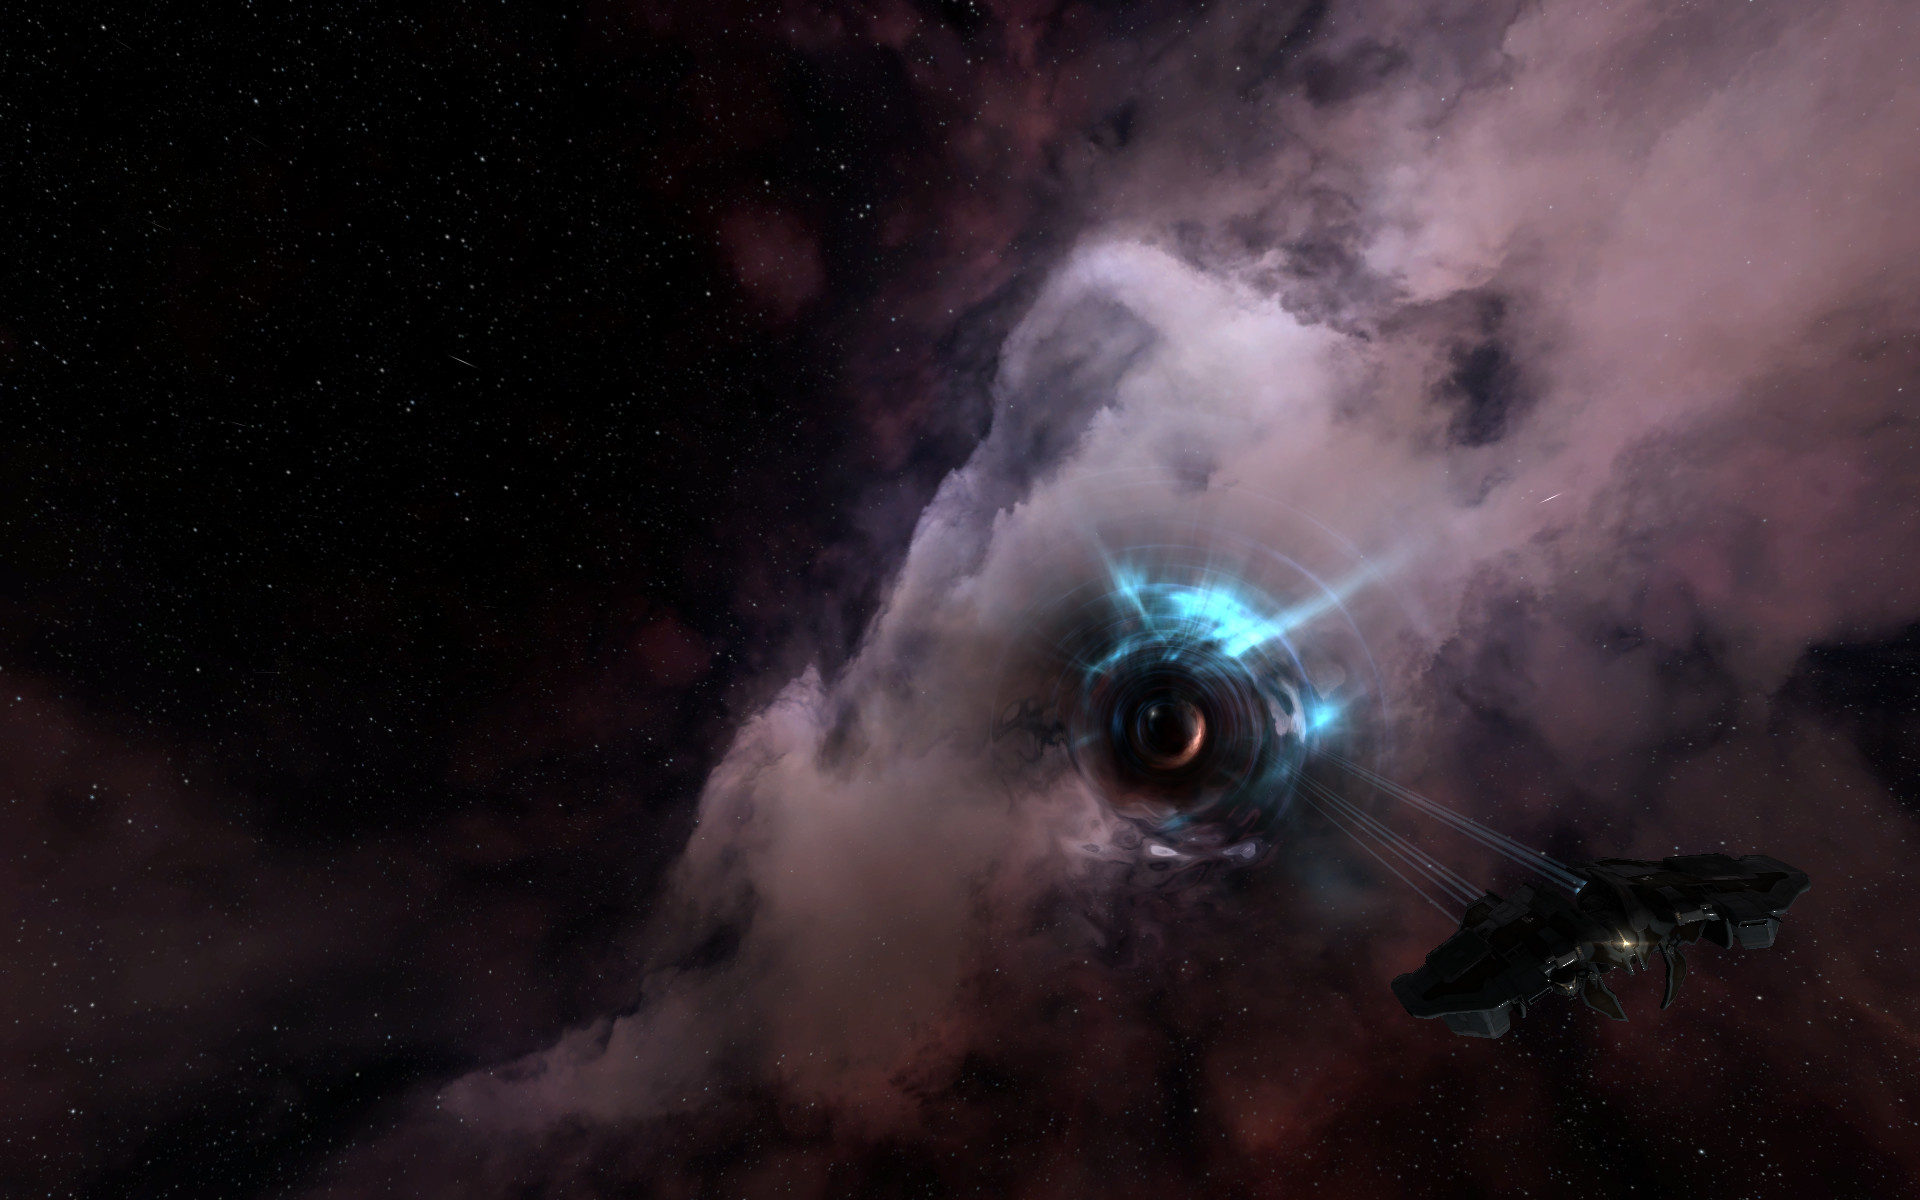 A visual update of Wormhole space with Oceanus